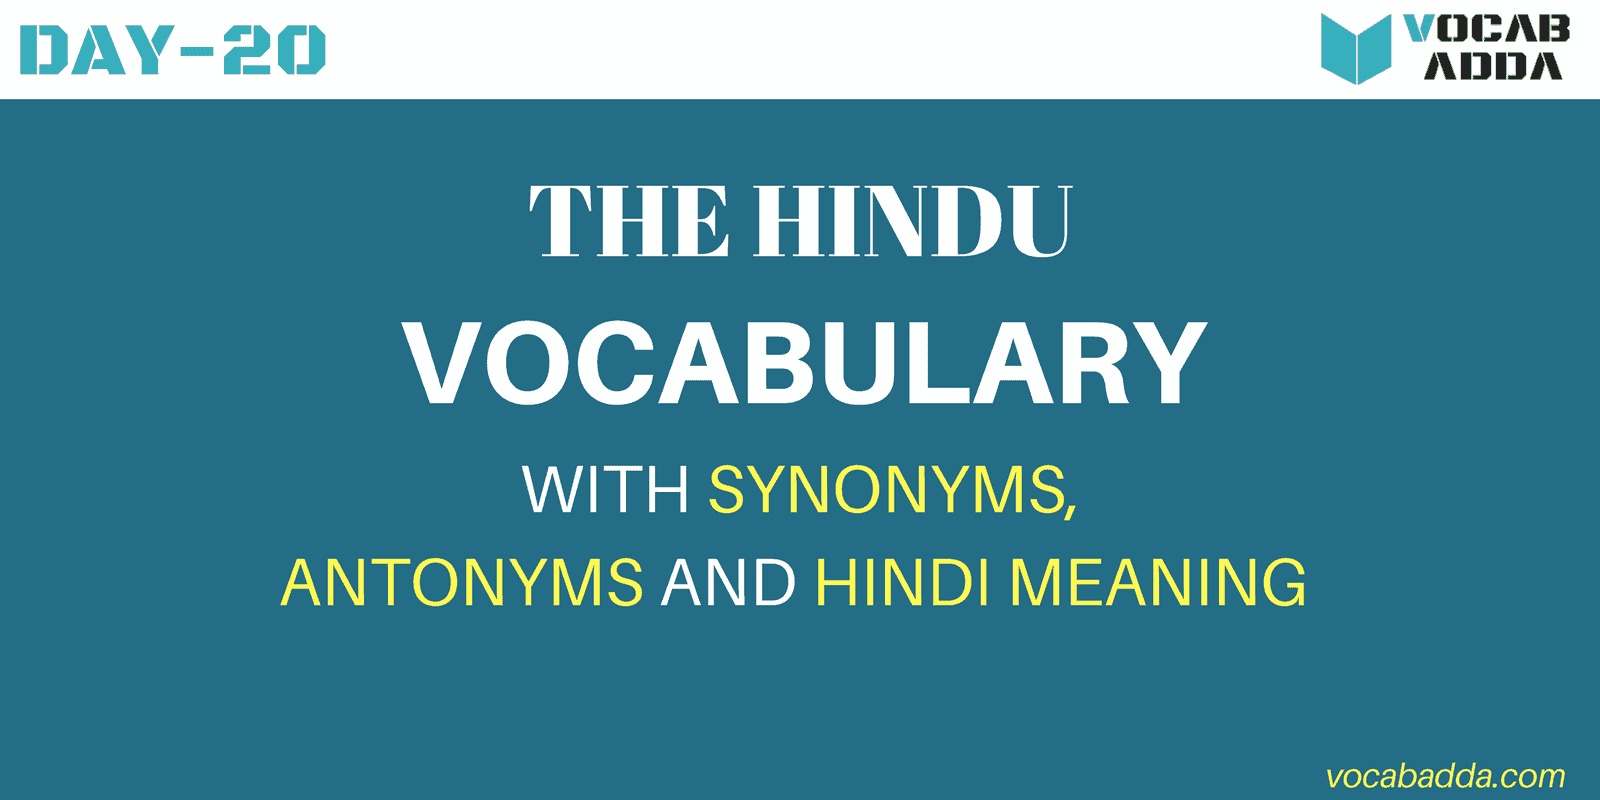 Hindu Vocabulary Day-20